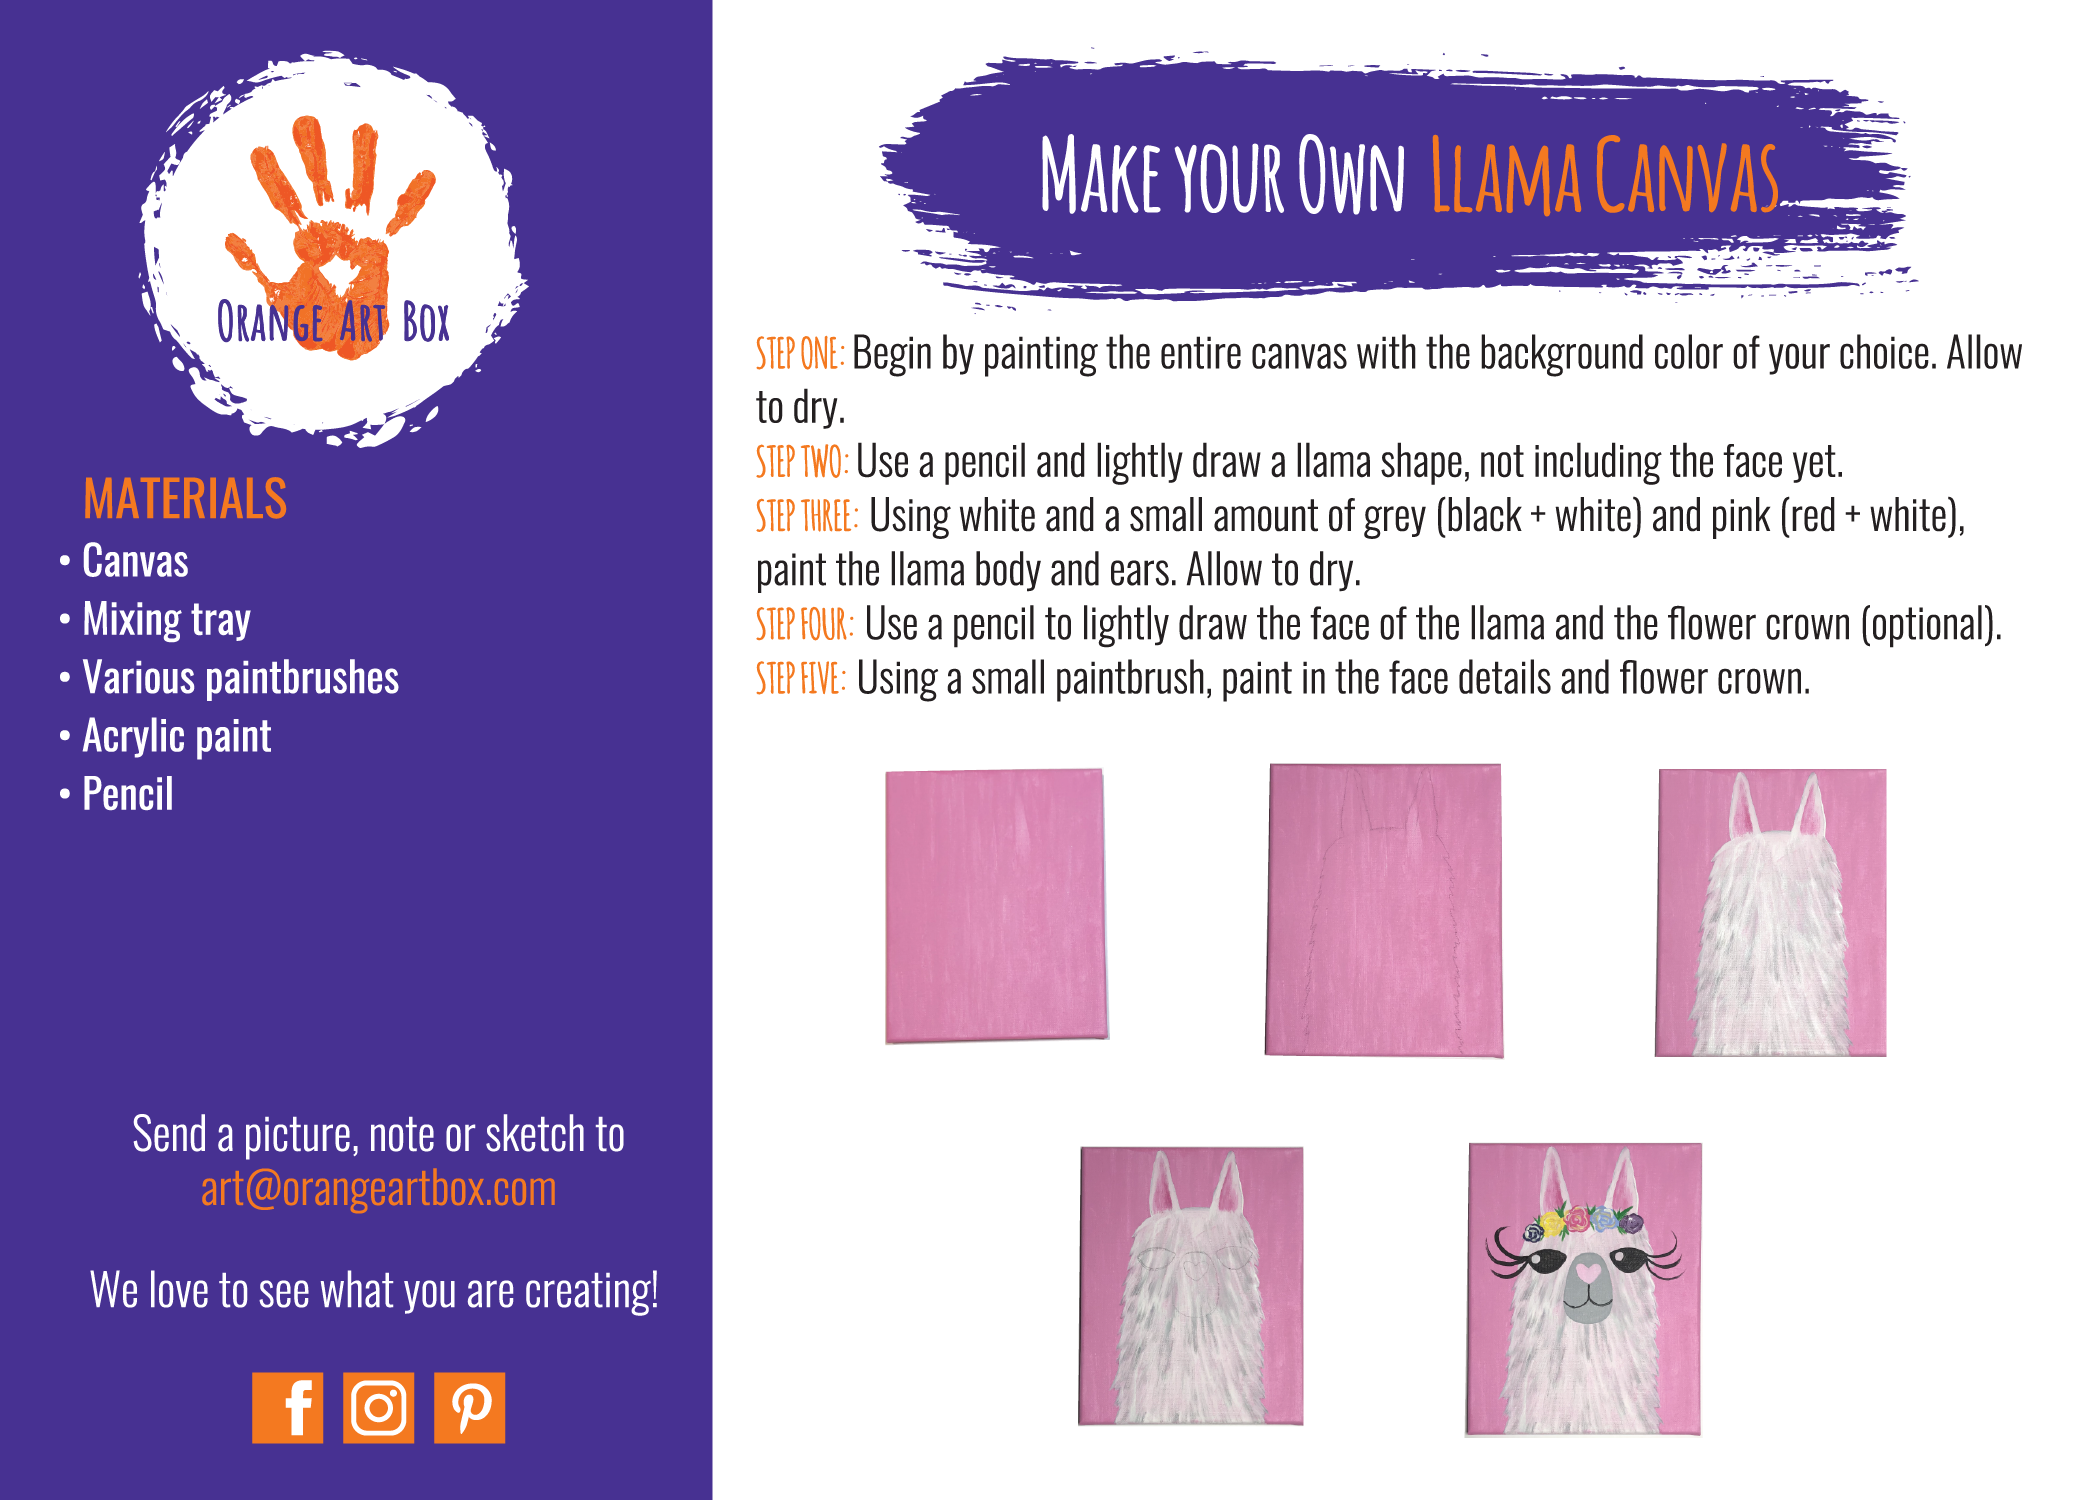 Llama Canvas - DIY Step by Step